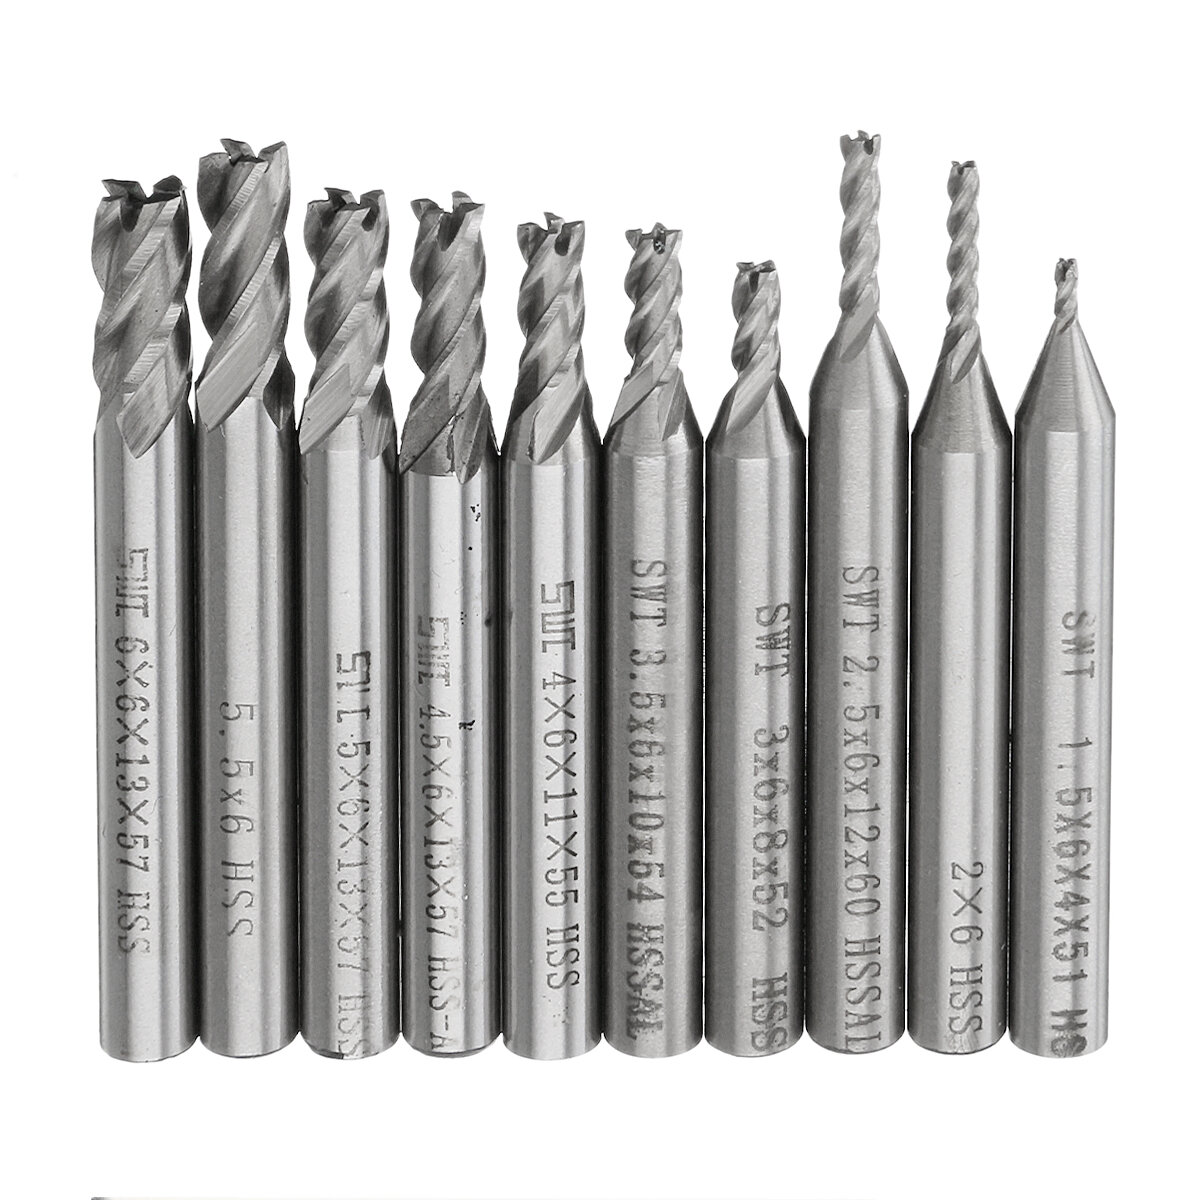 6 mm HSS 2 Flute End Mill Straight Shank for Machining Pack of 5